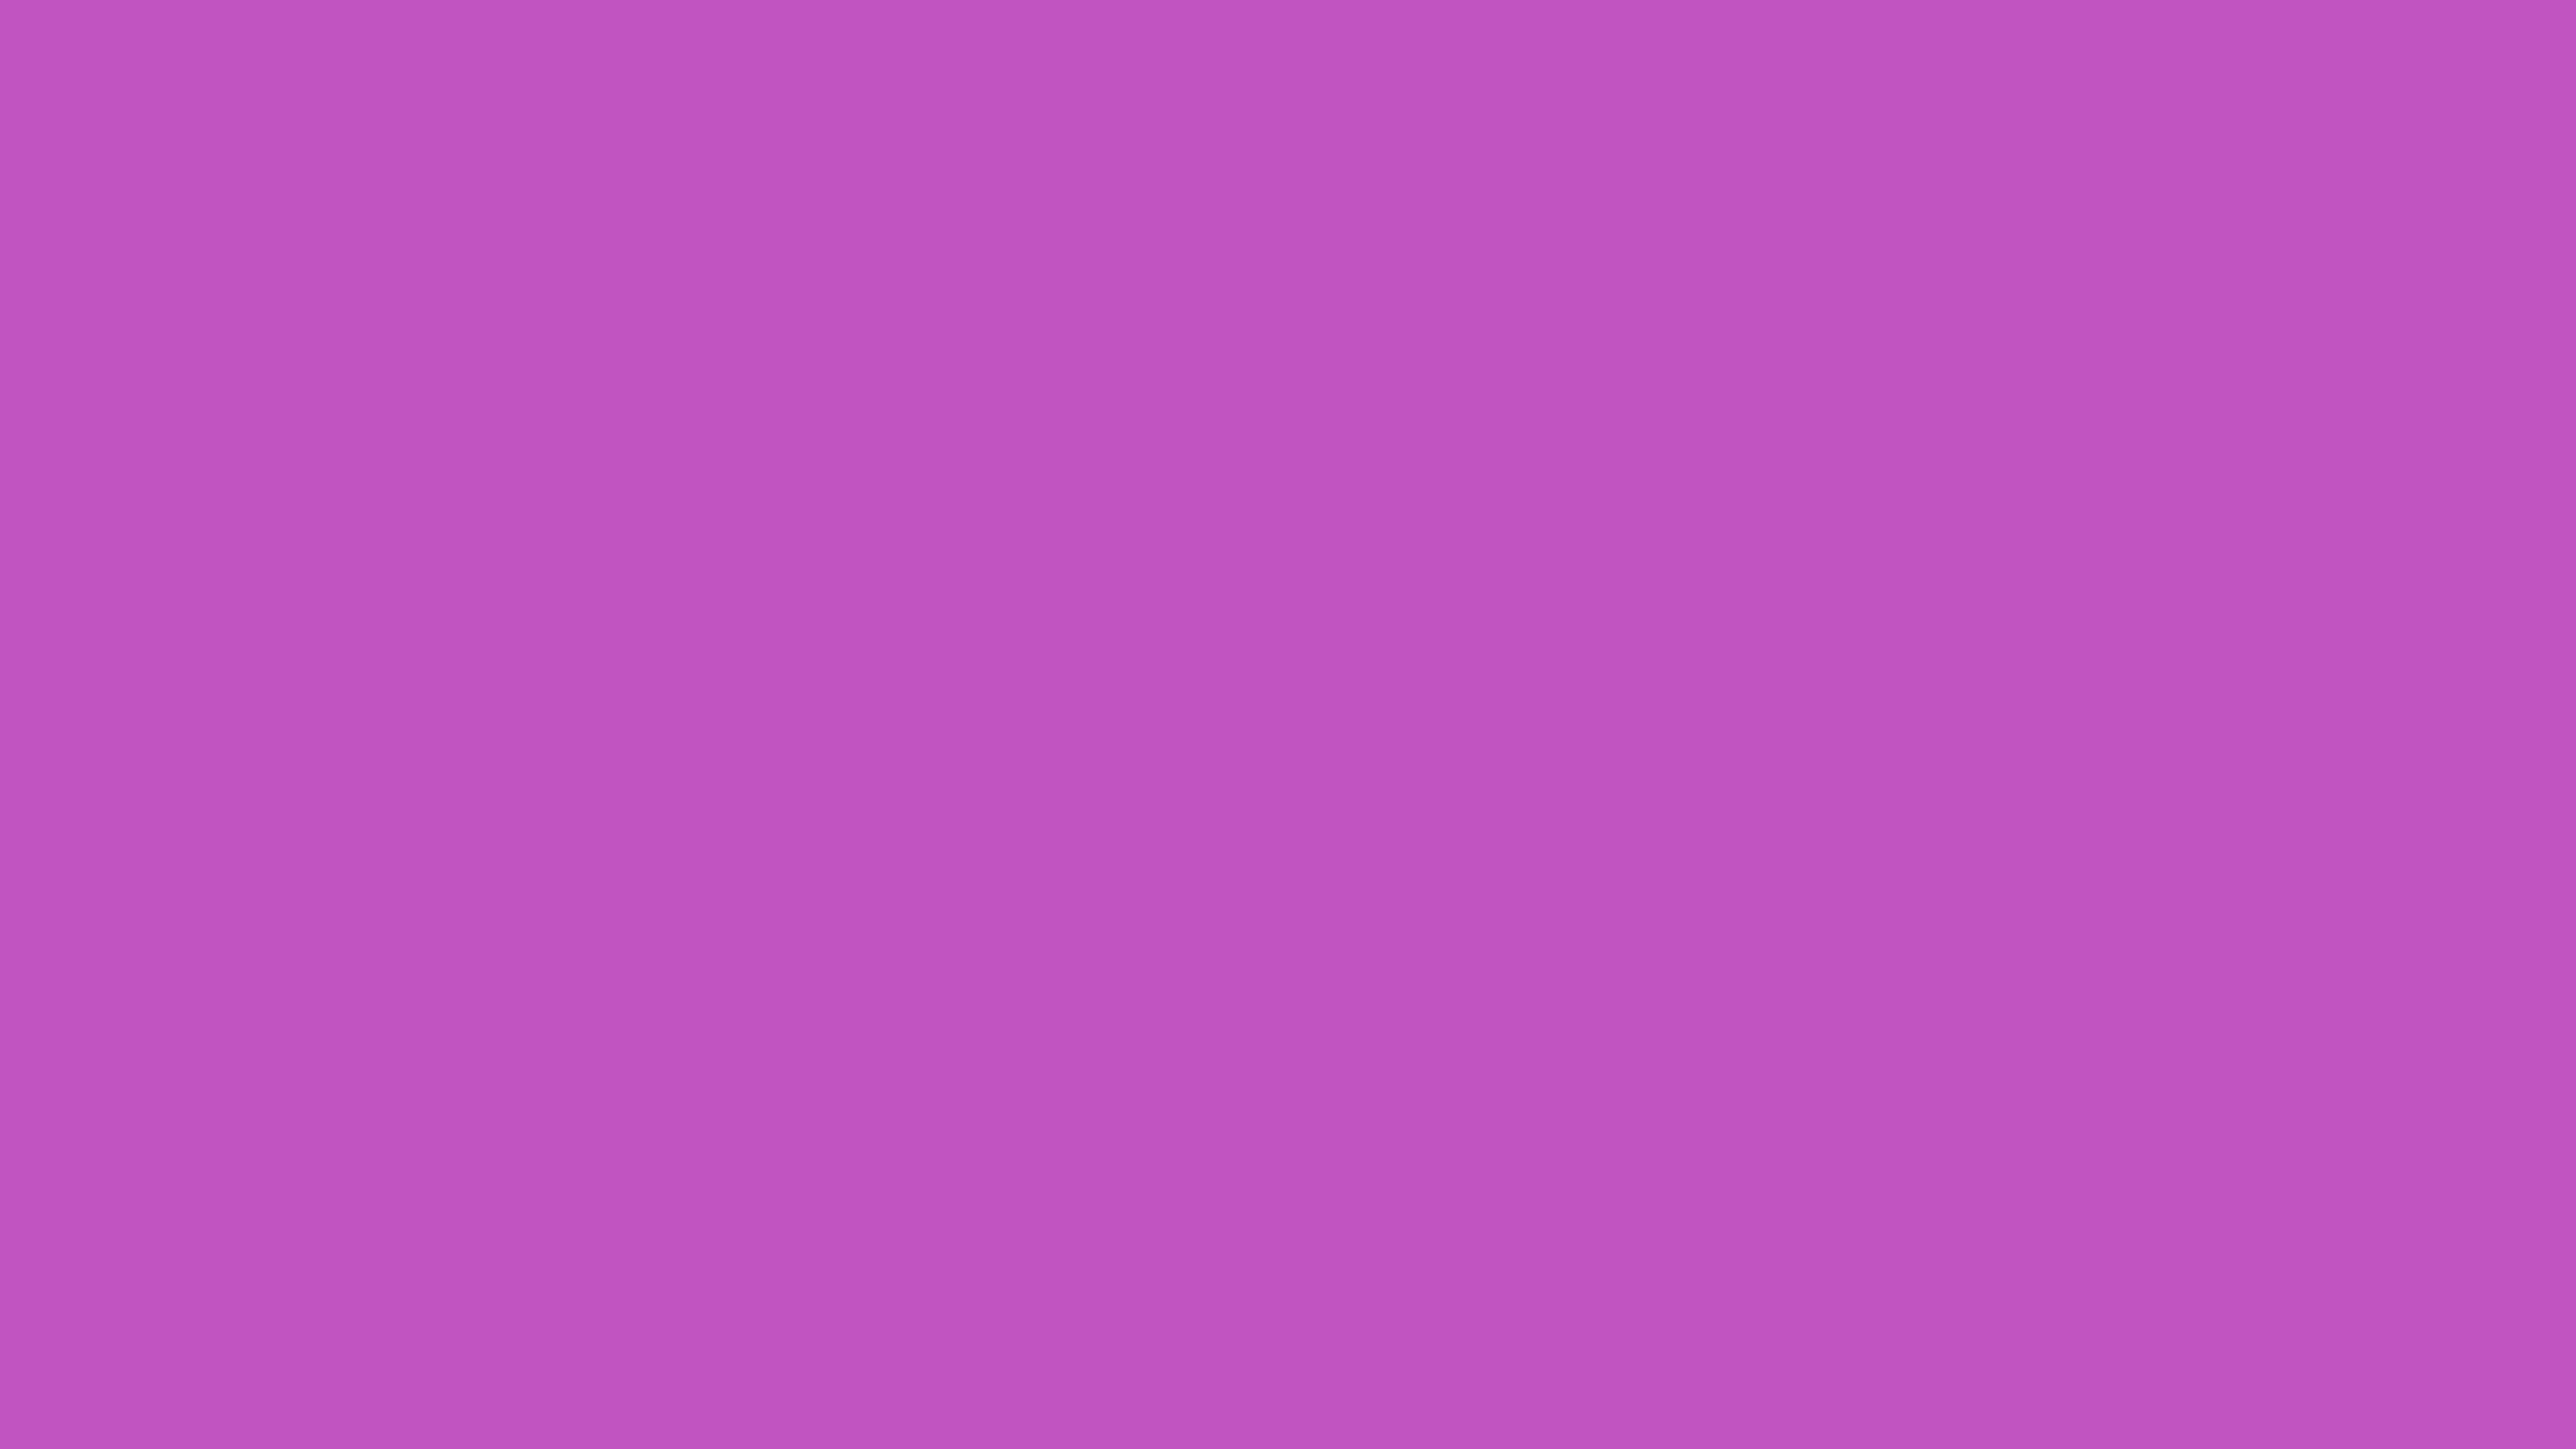 3840x2160 Fuchsia Crayola Solid Color Background